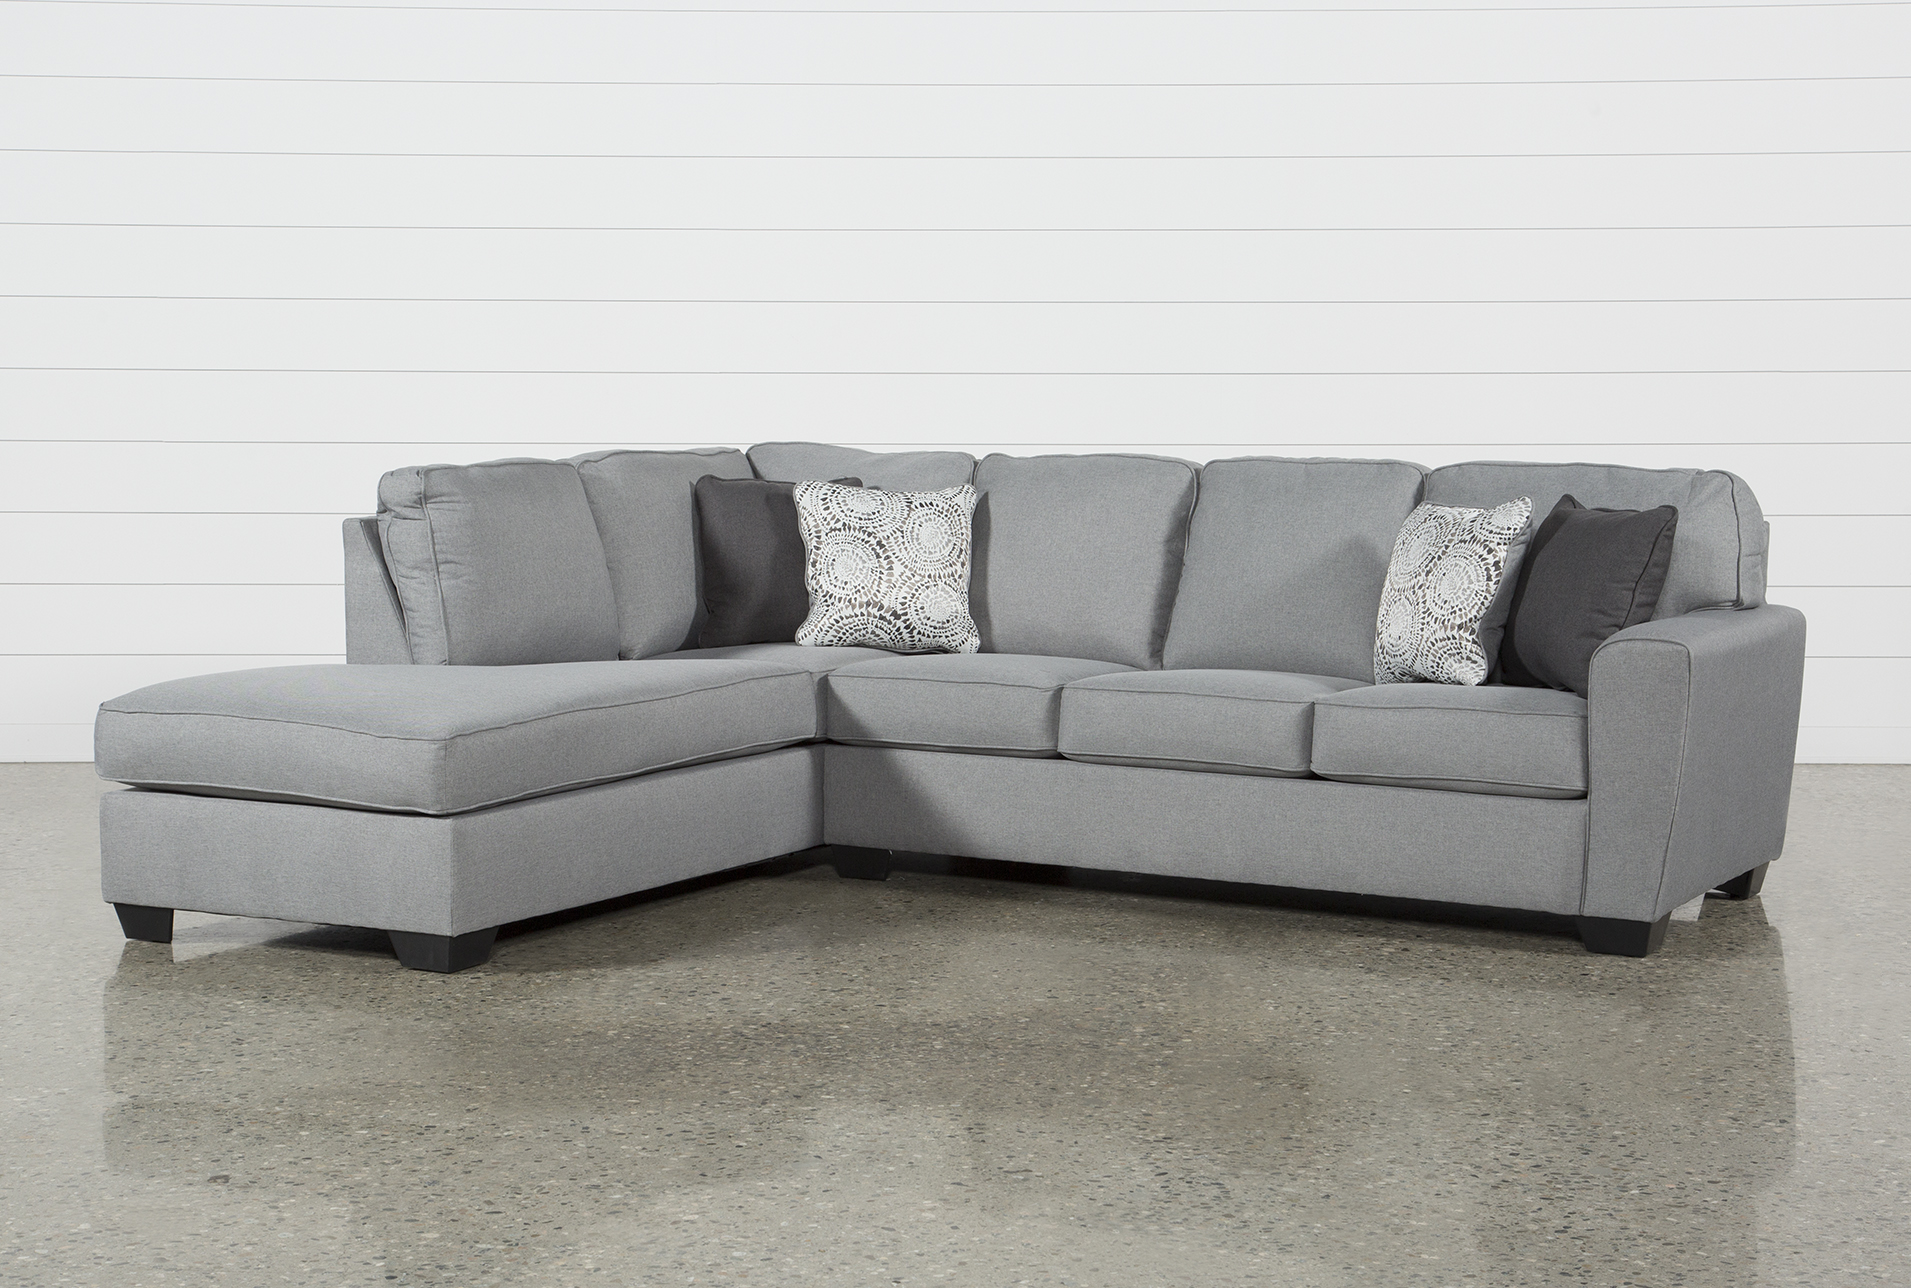 Mcdade Ash 2 Piece Sectional W/Laf Chaise (Qty: 1) Has Been Successfully  Added To Your Cart.